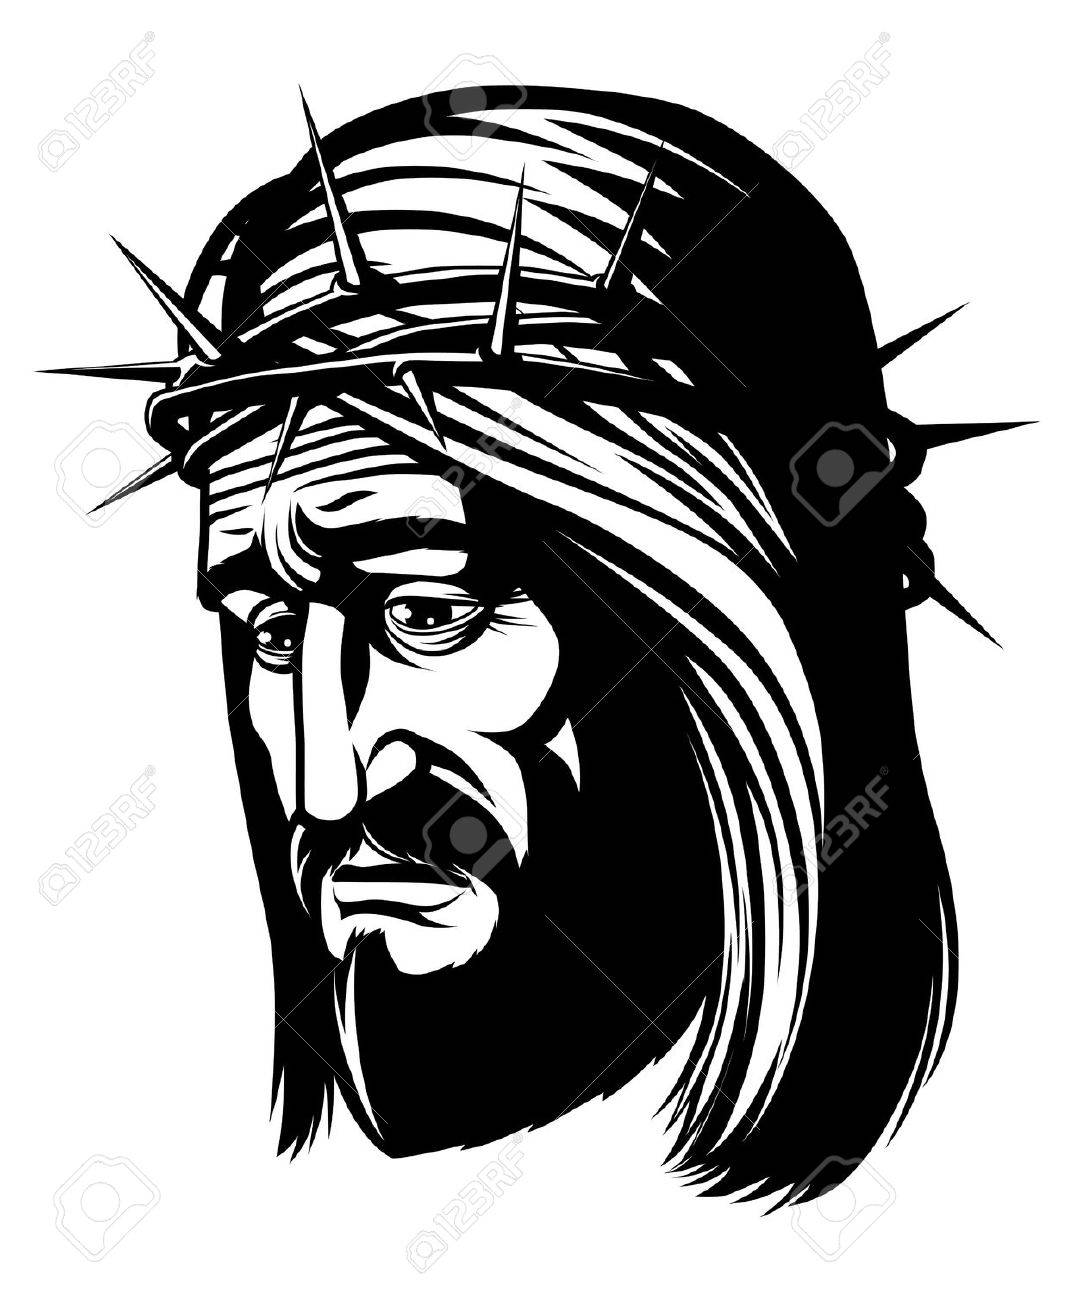 1074x1300 Isolated Portrait Of Jesus With Crown Of Thorns Stock Photo